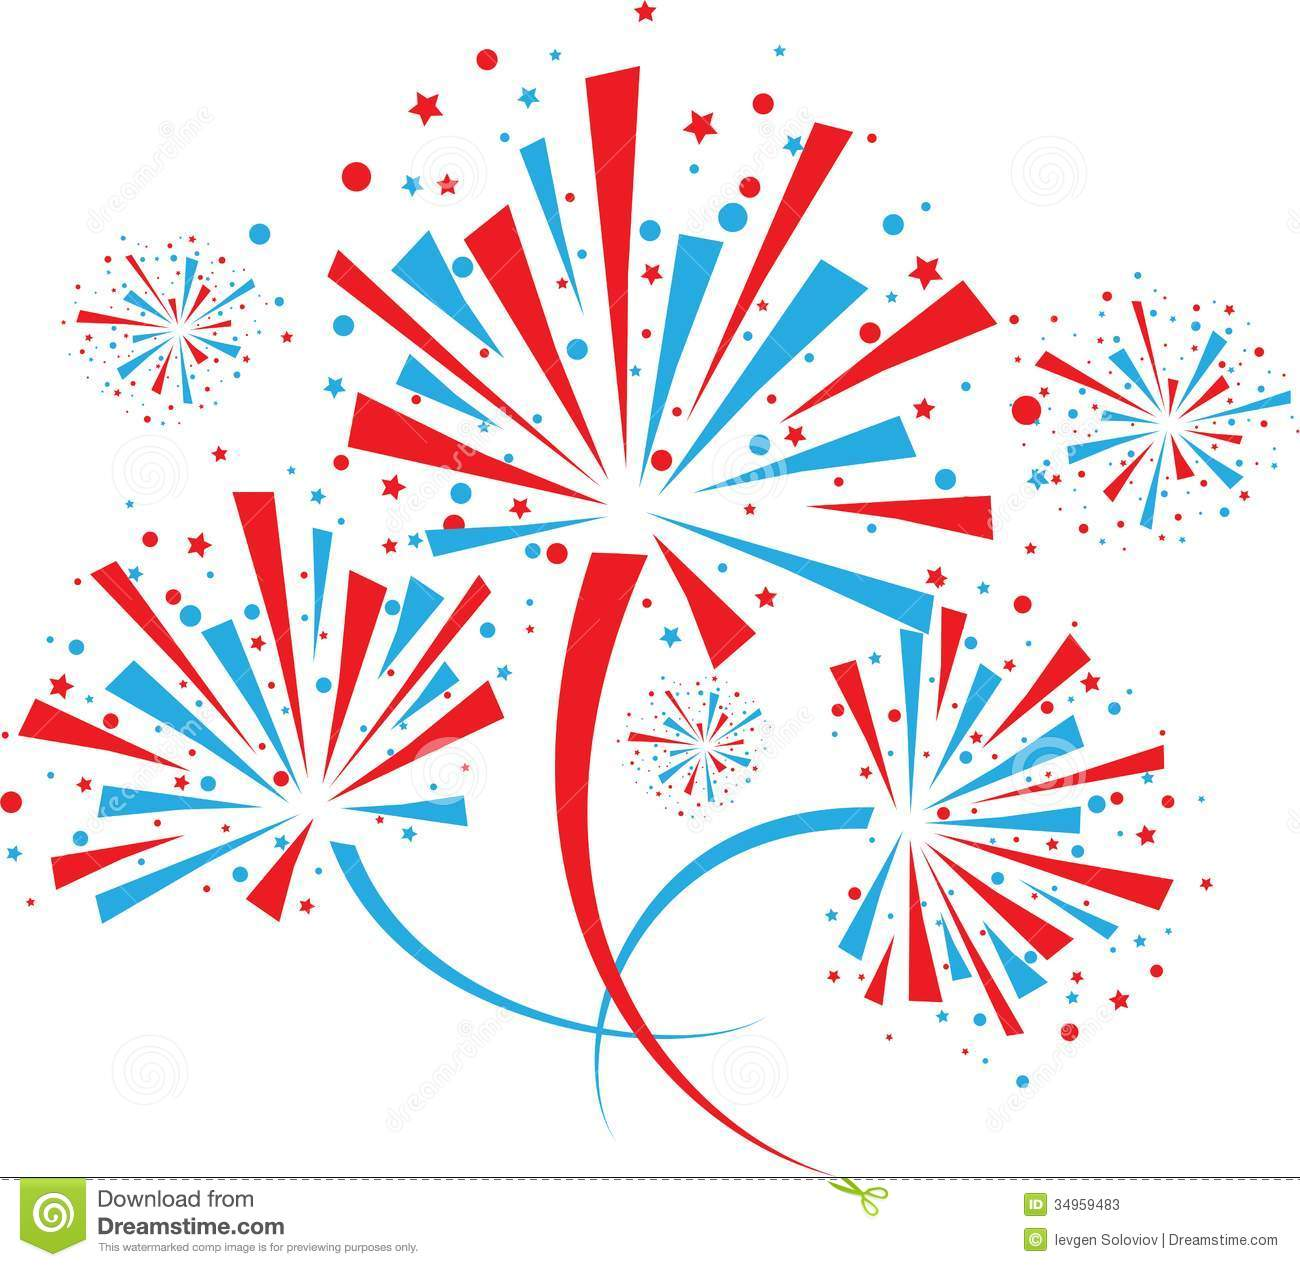 Red white blue stars clipart.